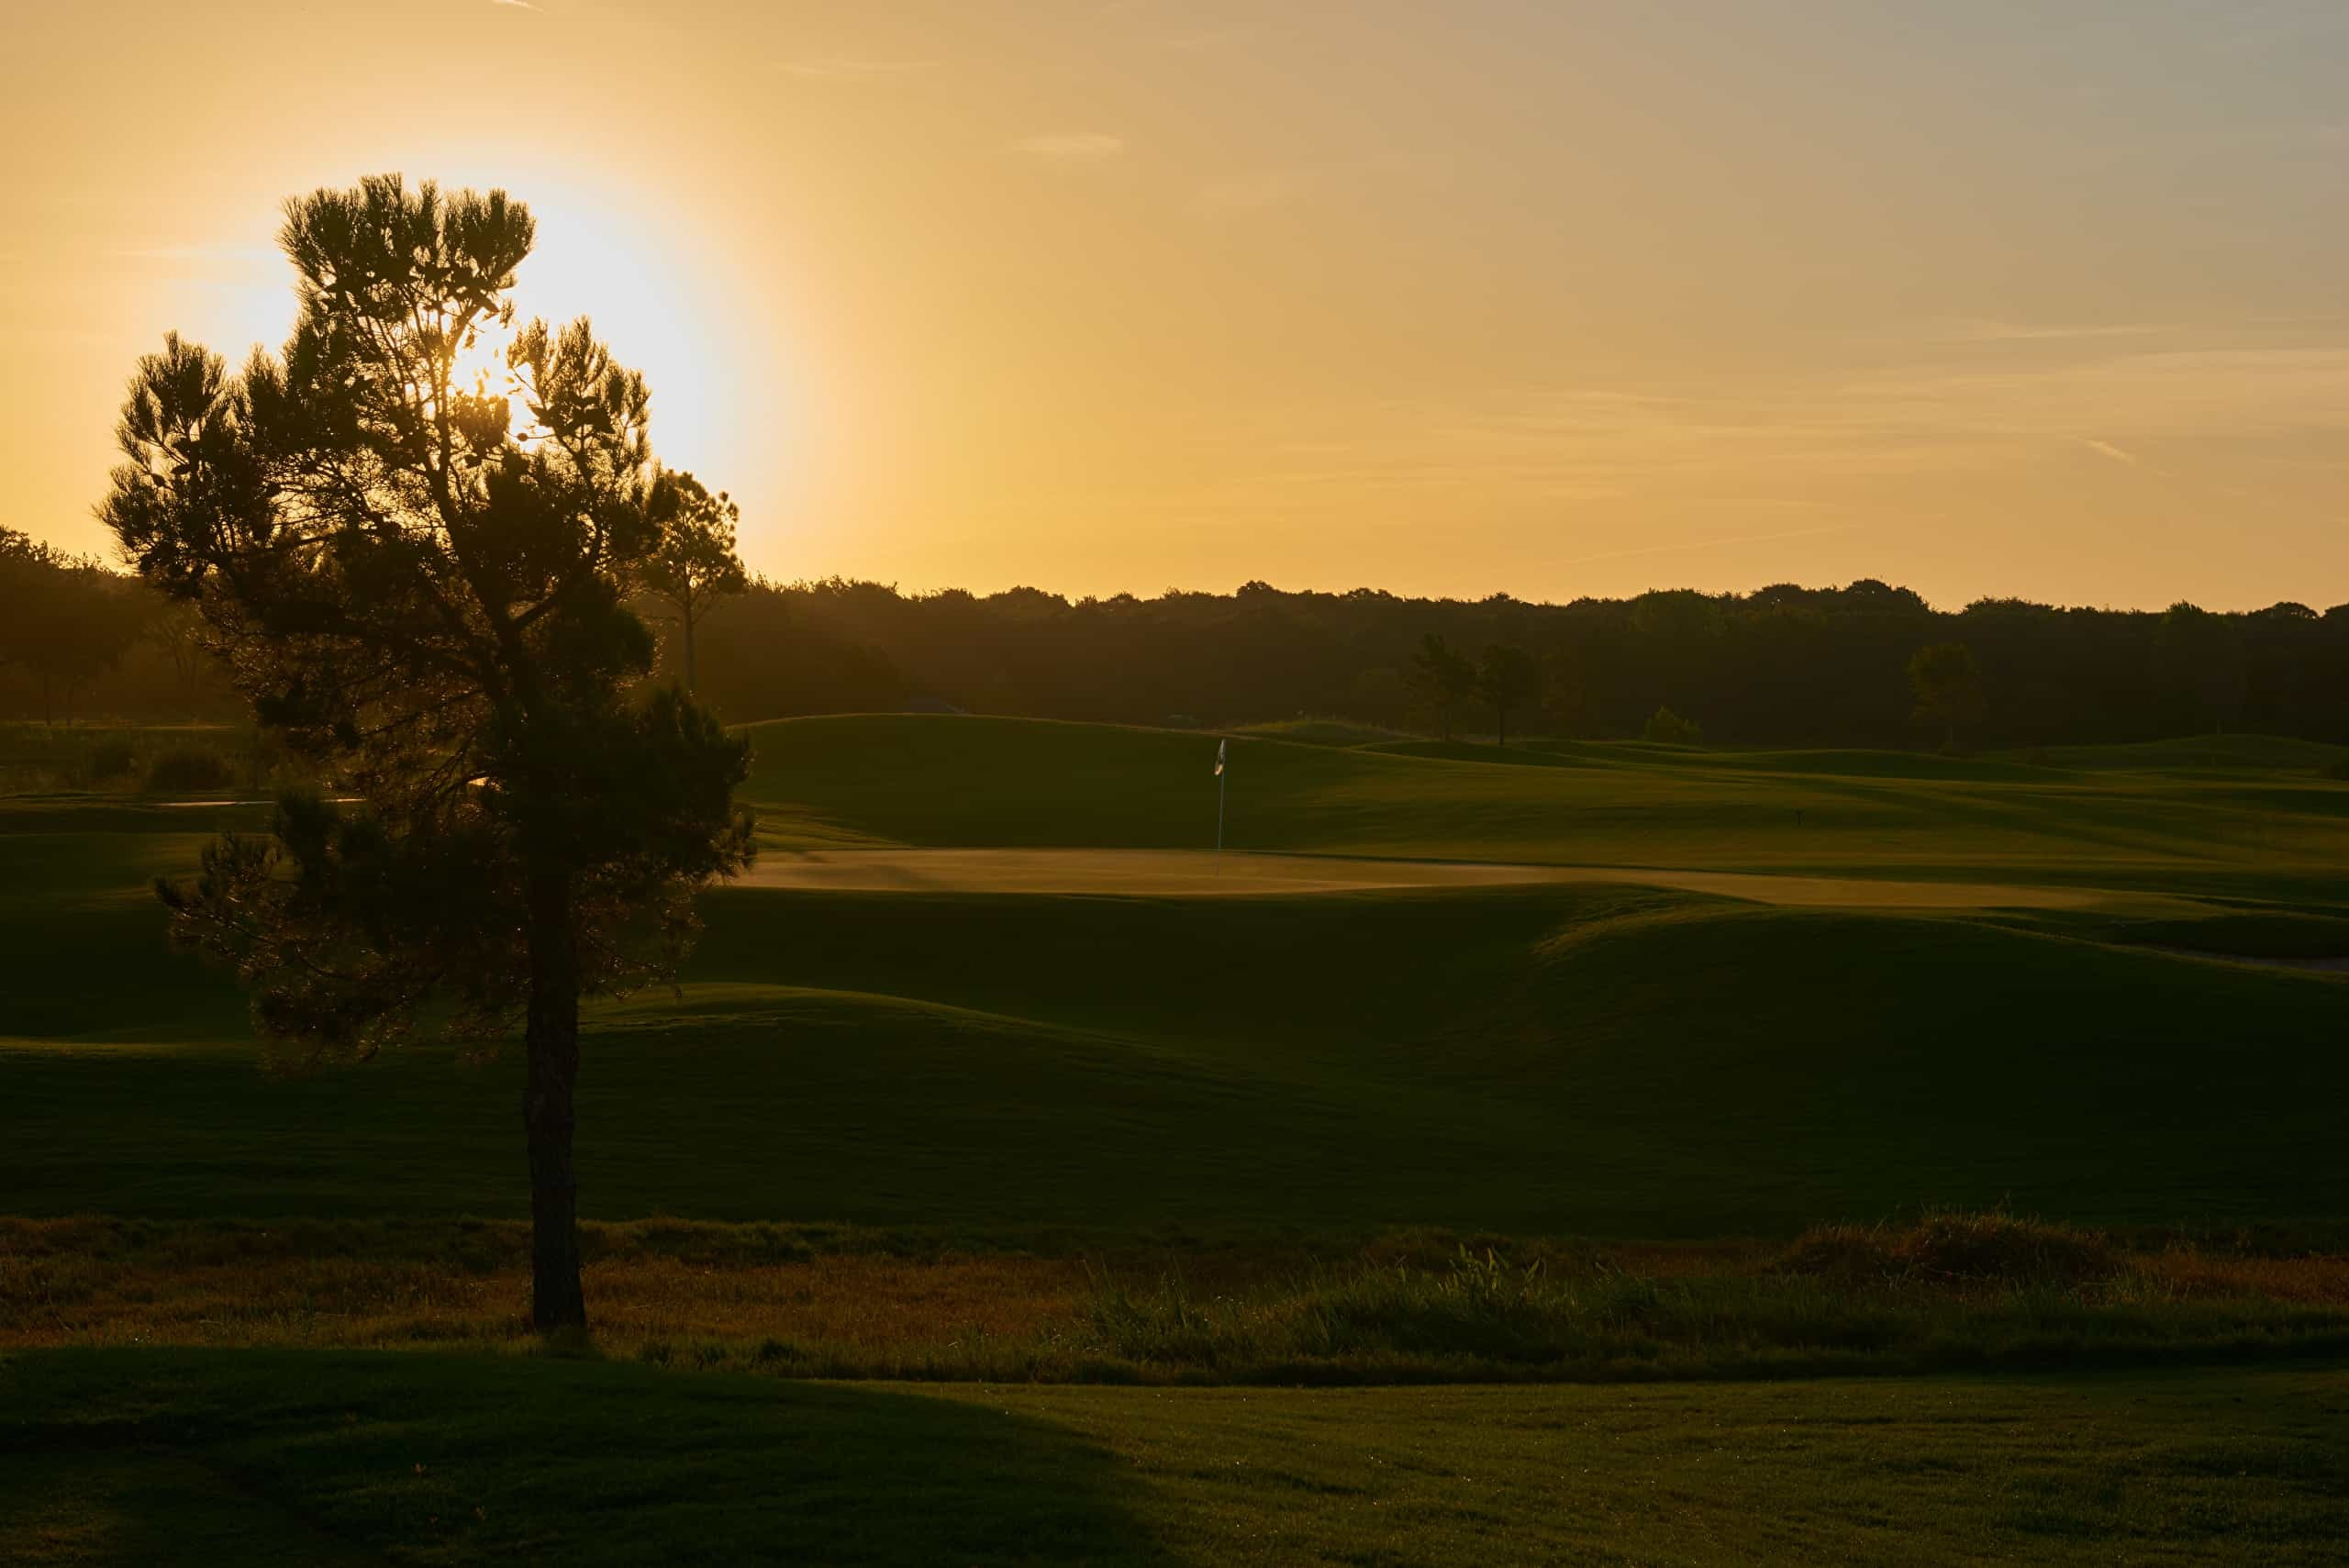 Sunset at Winstar Golf Course in Thackerville, Oklahoma